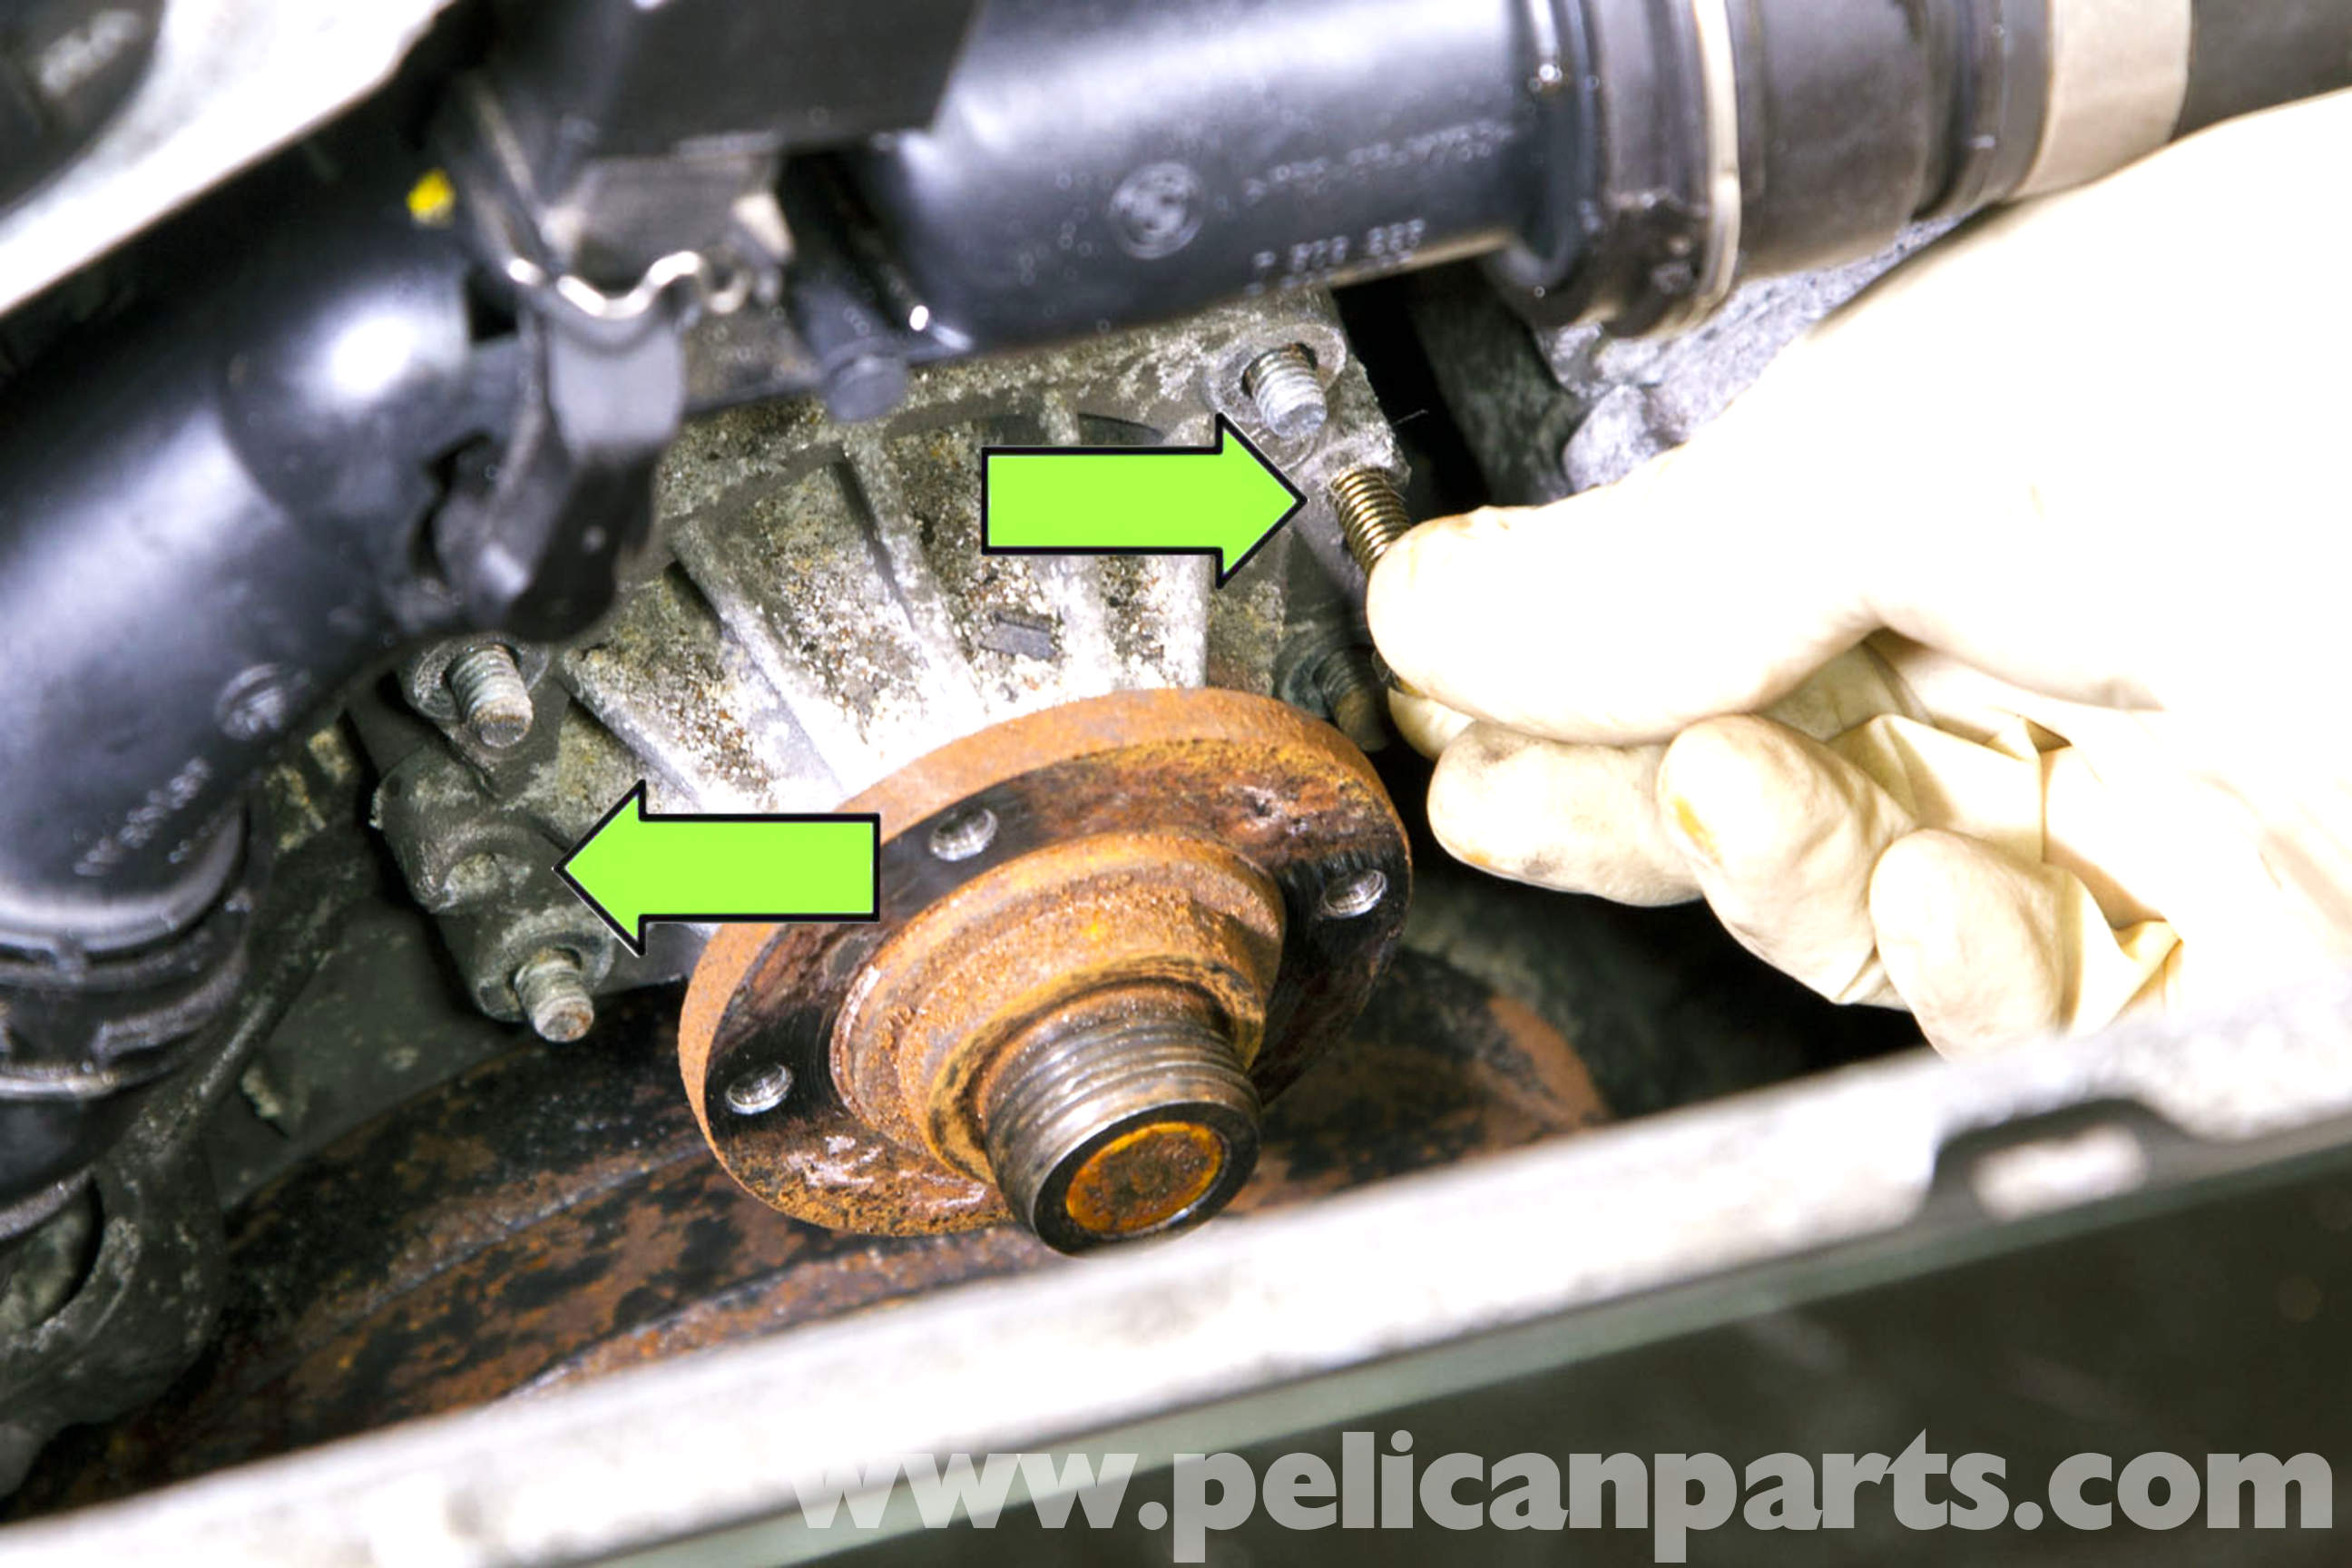 Bmw E46 Water Pump Replacement Bmw 325i 2001 2005 Bmw 325xi 2001 2005 Bmw 325ci 2001 2006 Bmw 325ti 2001 2004 Pelican Parts Technical Article